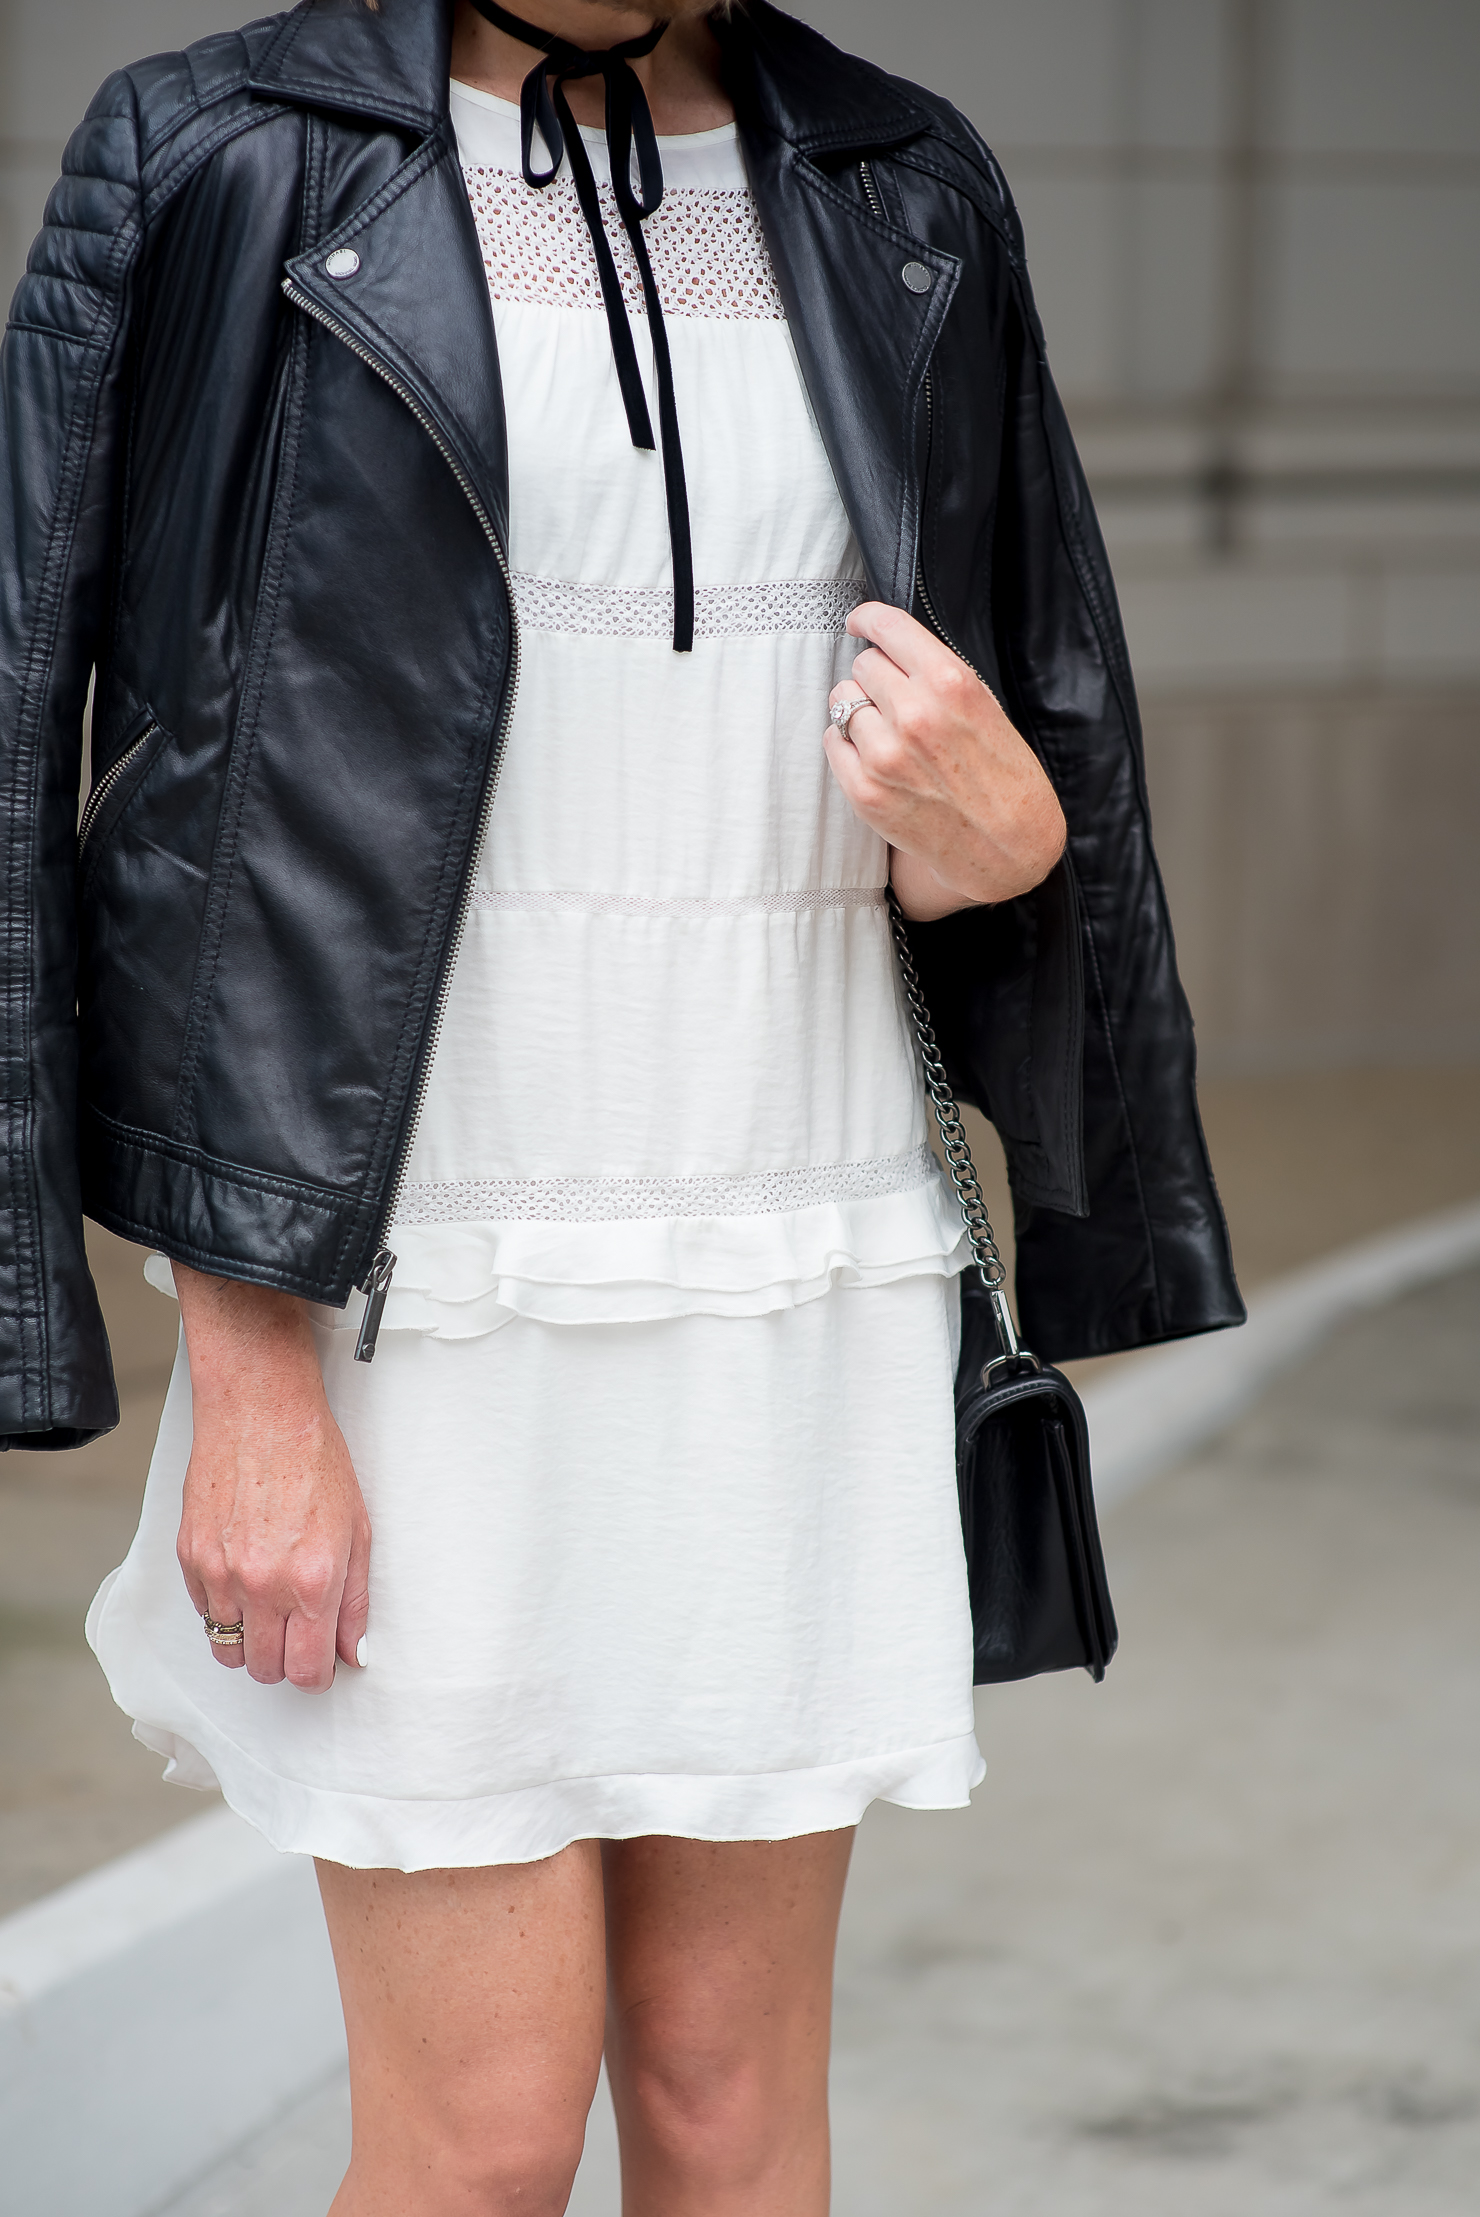 who-what-wear-for-target-white-ruffled-dress-black-moto-jacket-velvet-ribbon-bow-choker-transitioning-the-little-white-boho-dress-for-fall